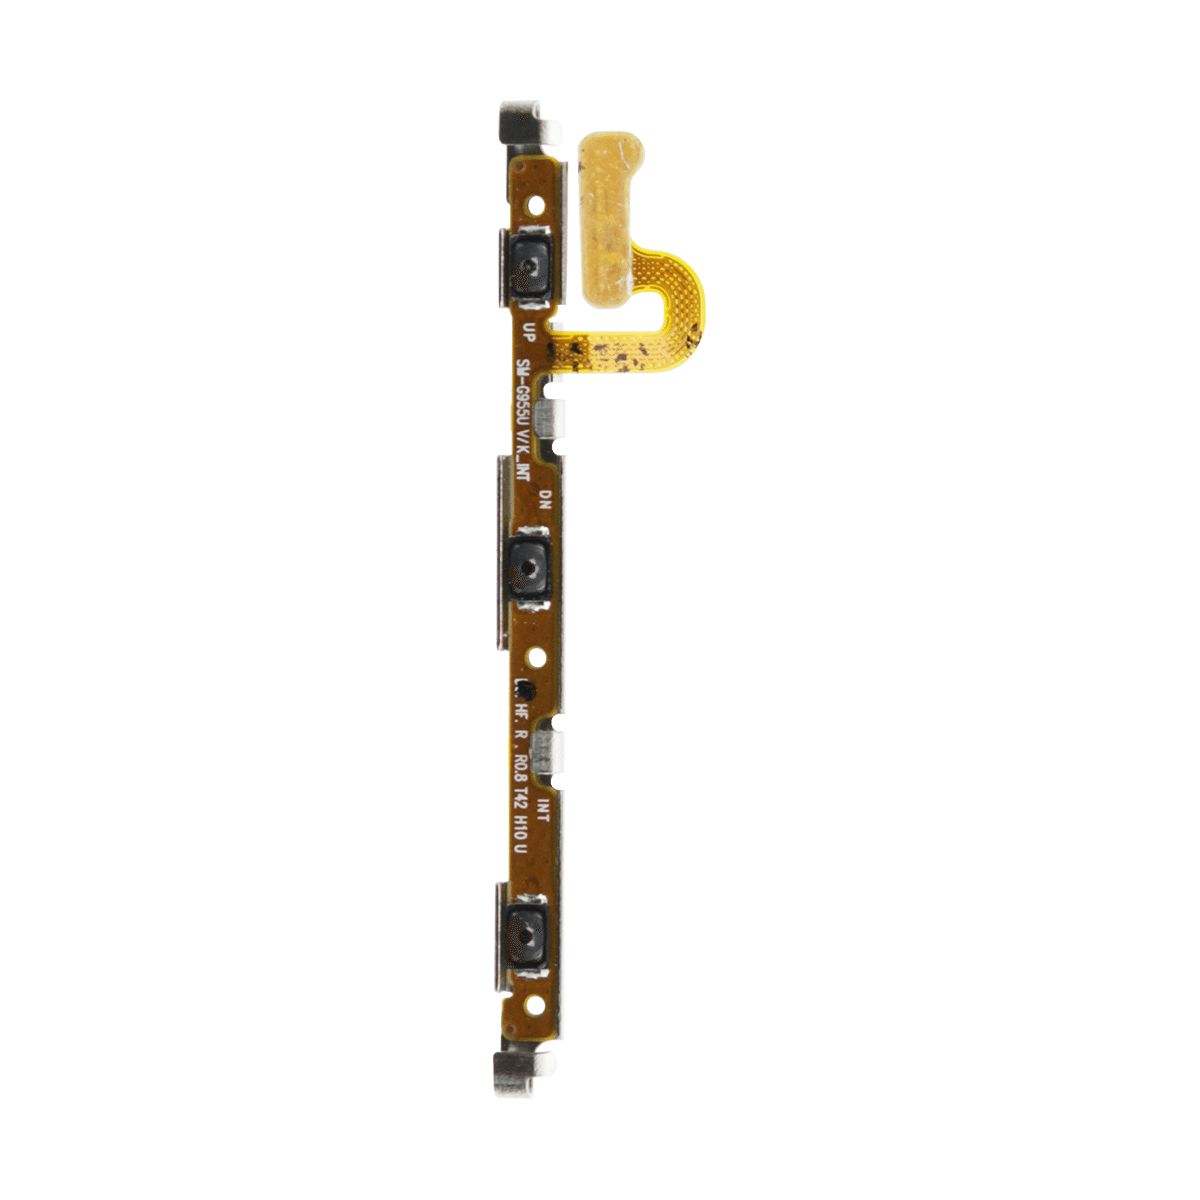 Samsung Galaxy Note 8 Volume Buttons Flex Cable Replacement